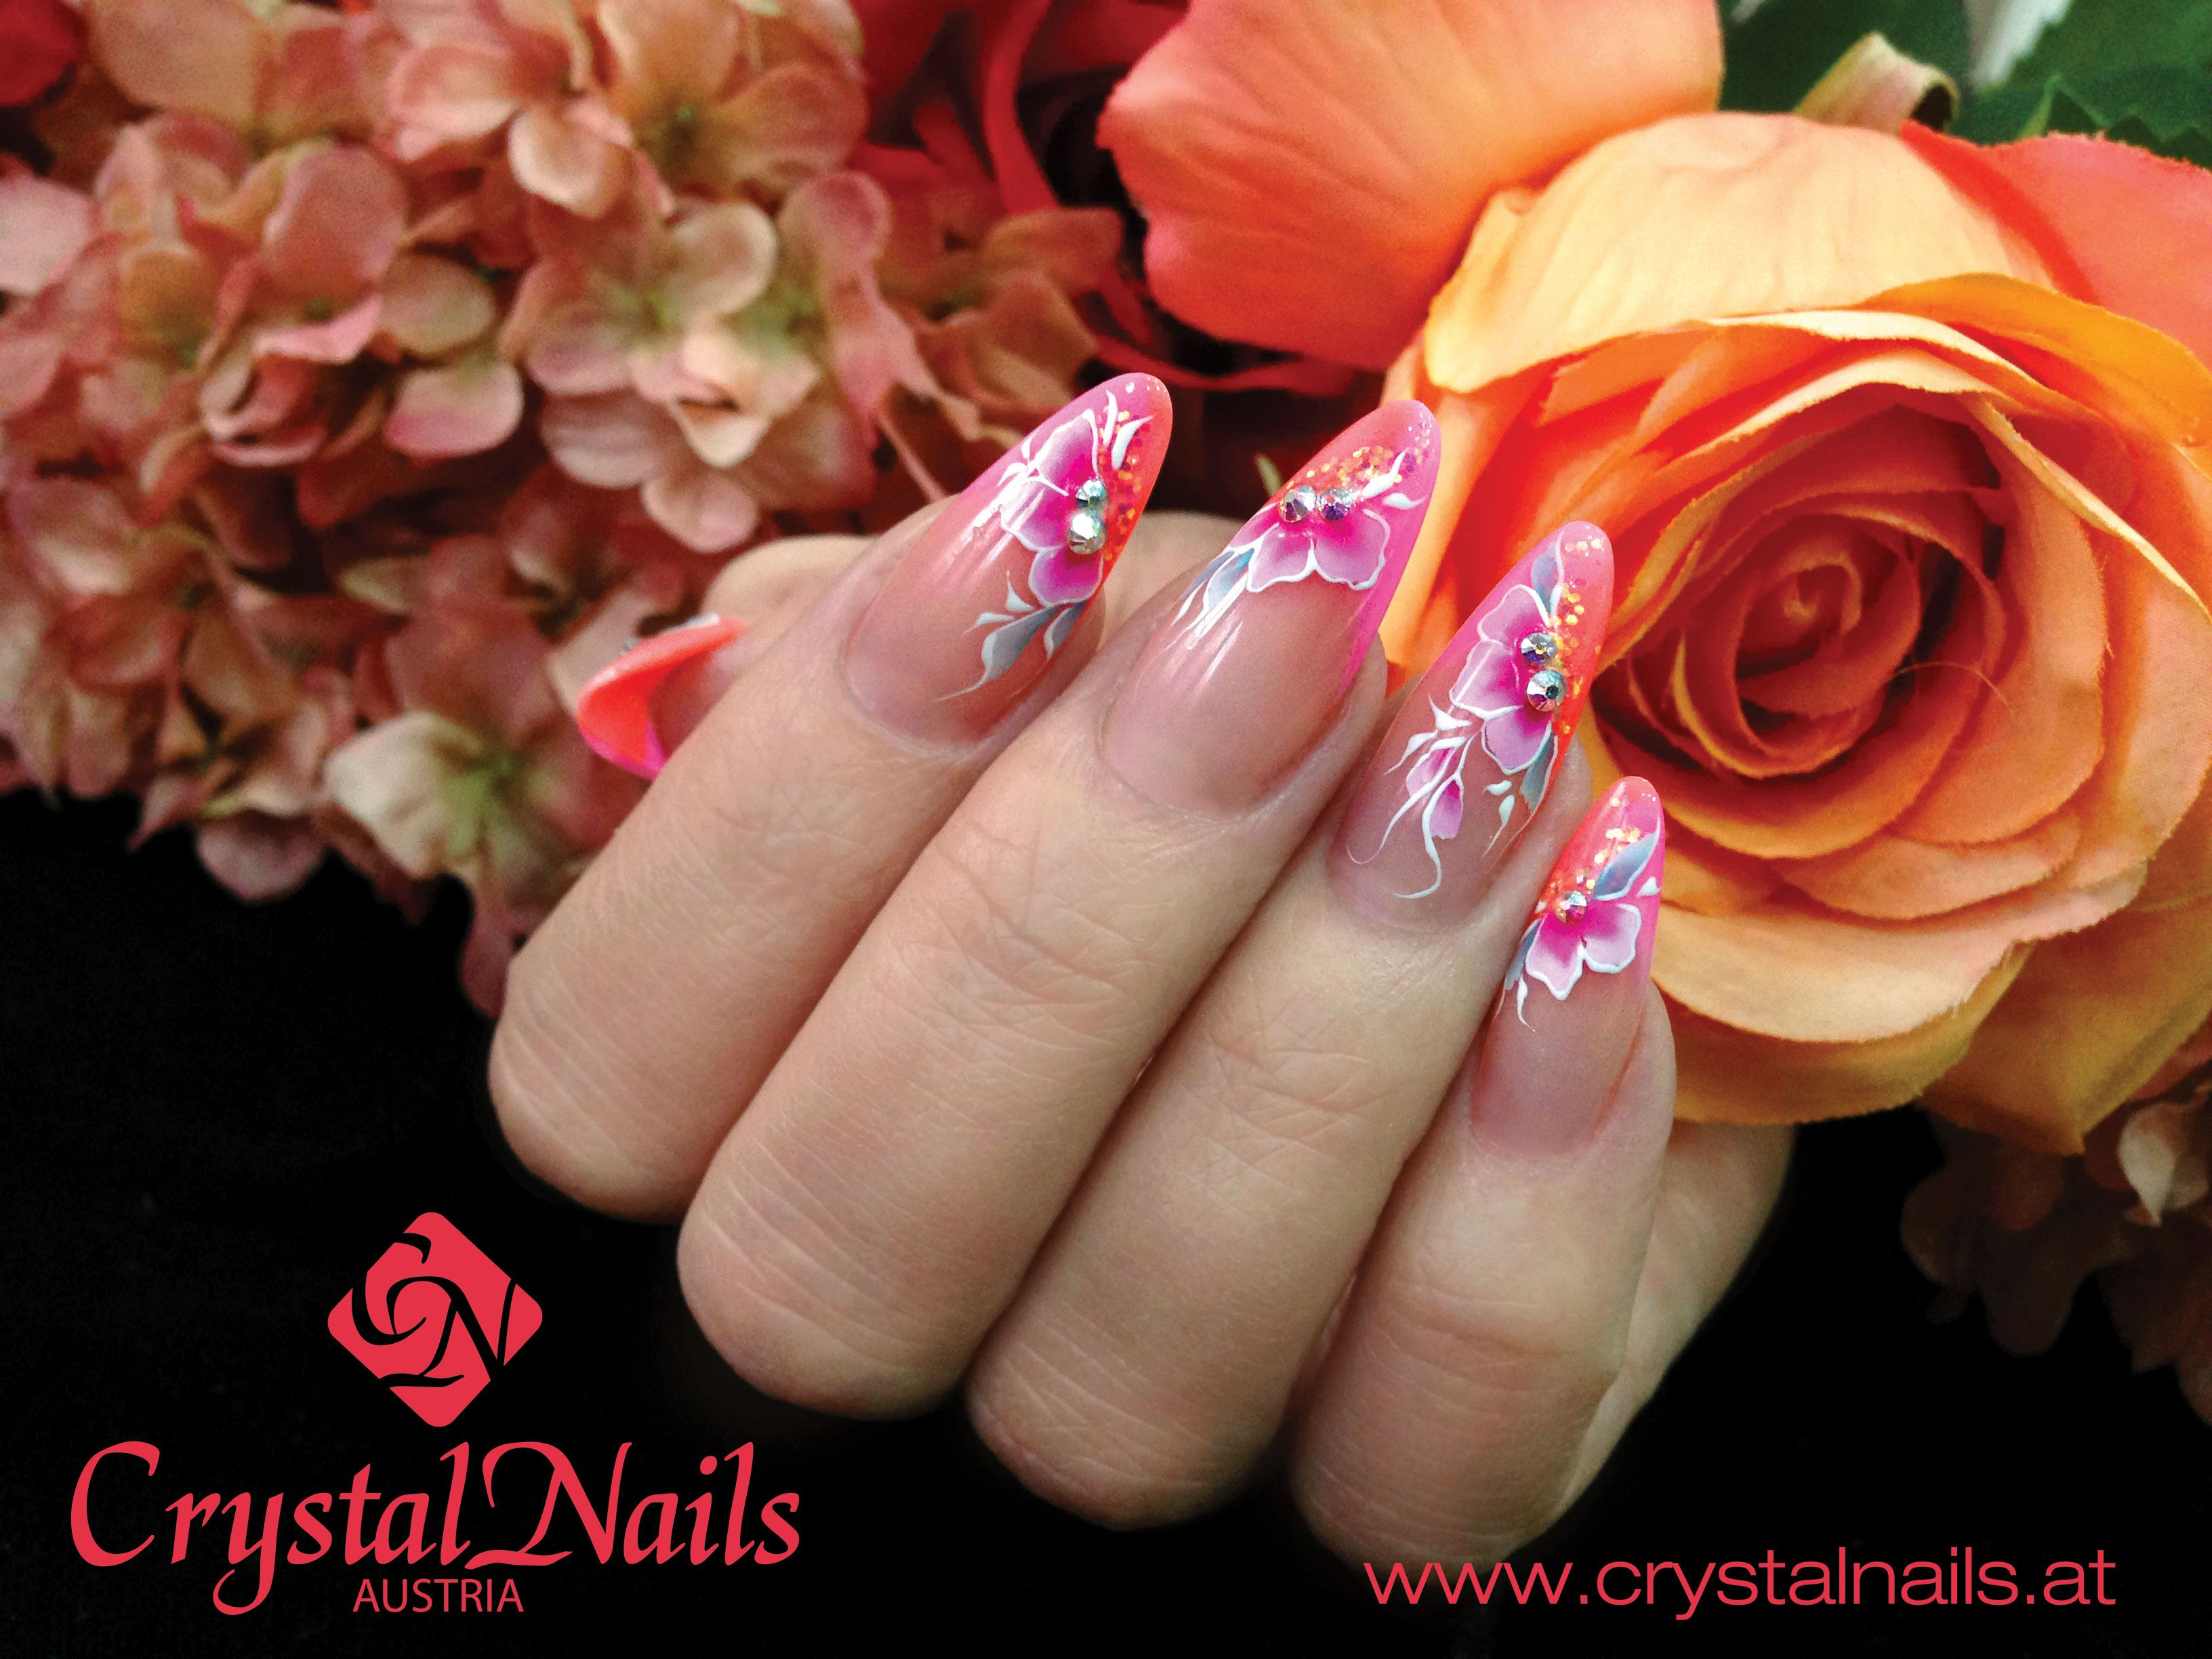 nails #Crystalnails #Nägel #ColorGel #nagelstudio #nailart #Muster ...